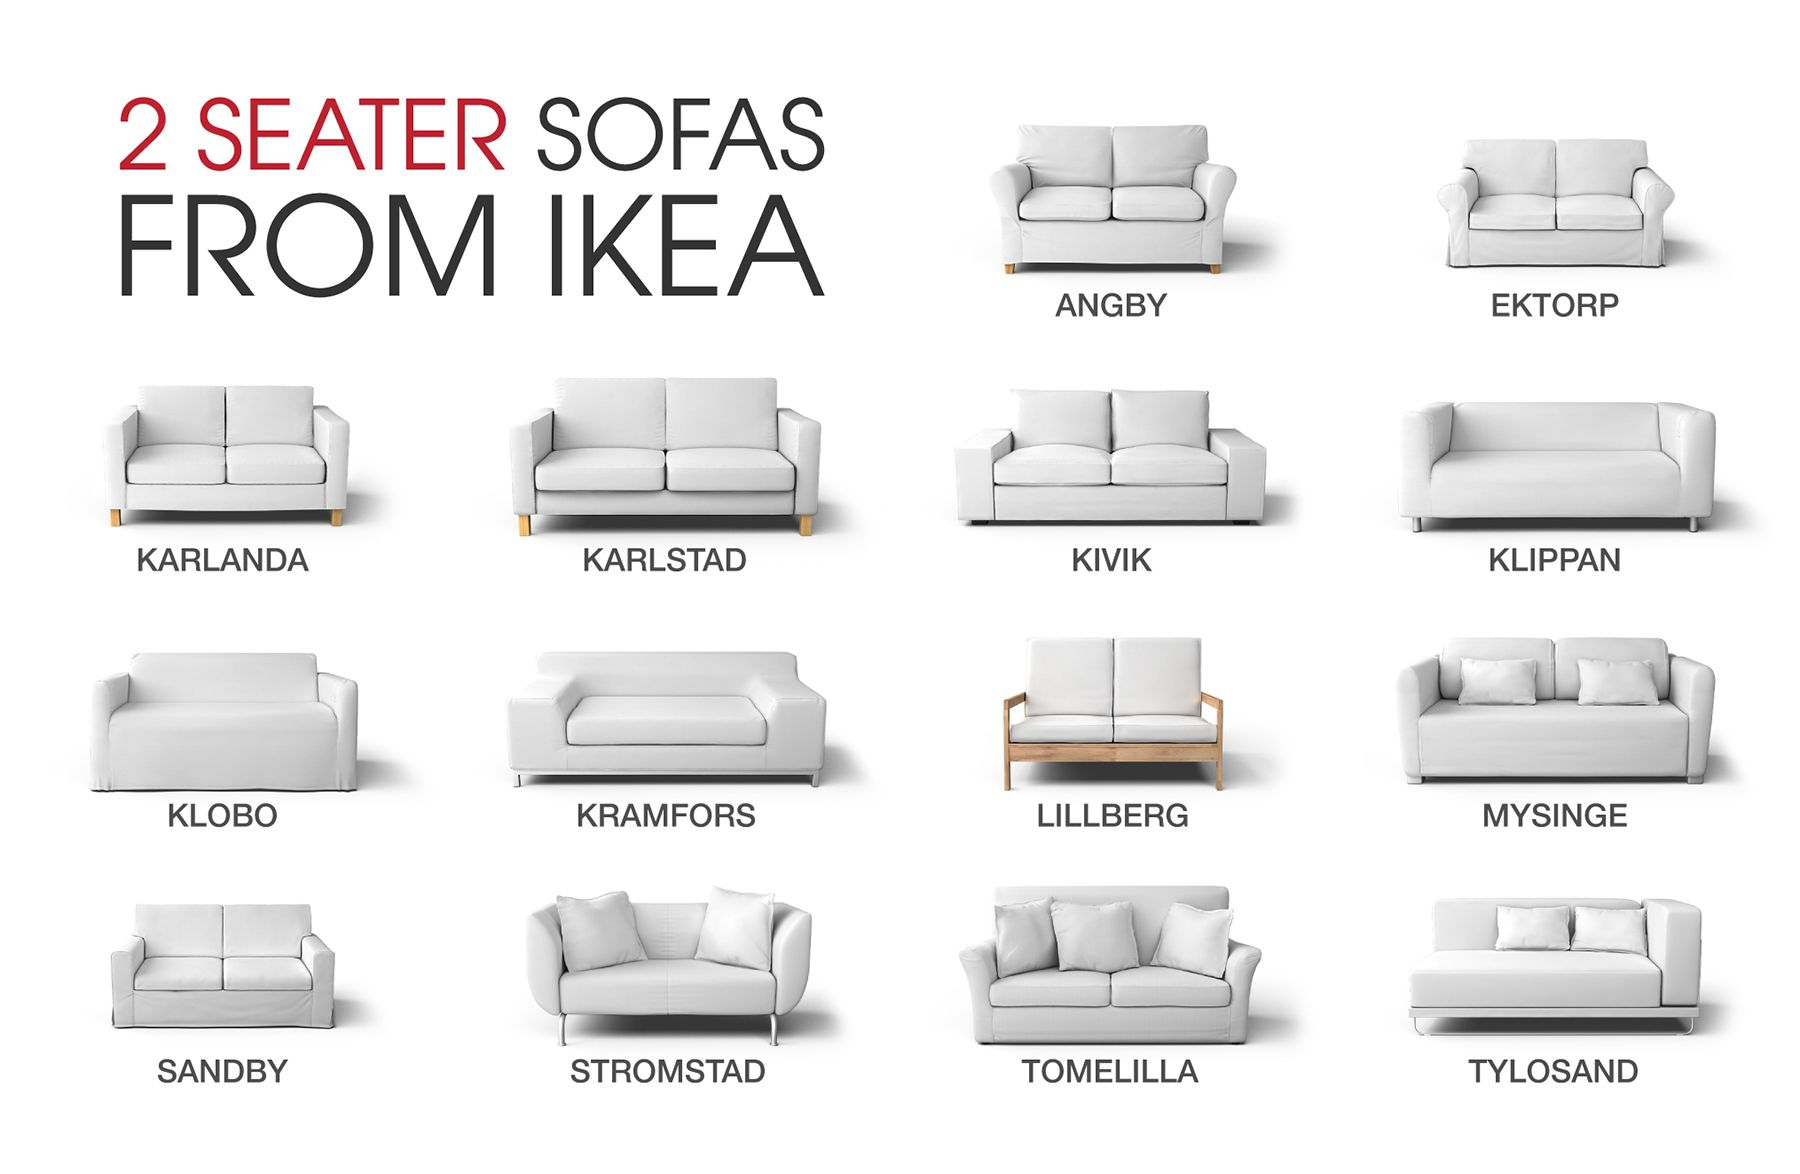 Ektorp 2seat Sofa Bed Dimensions Noteshares Com Sofa